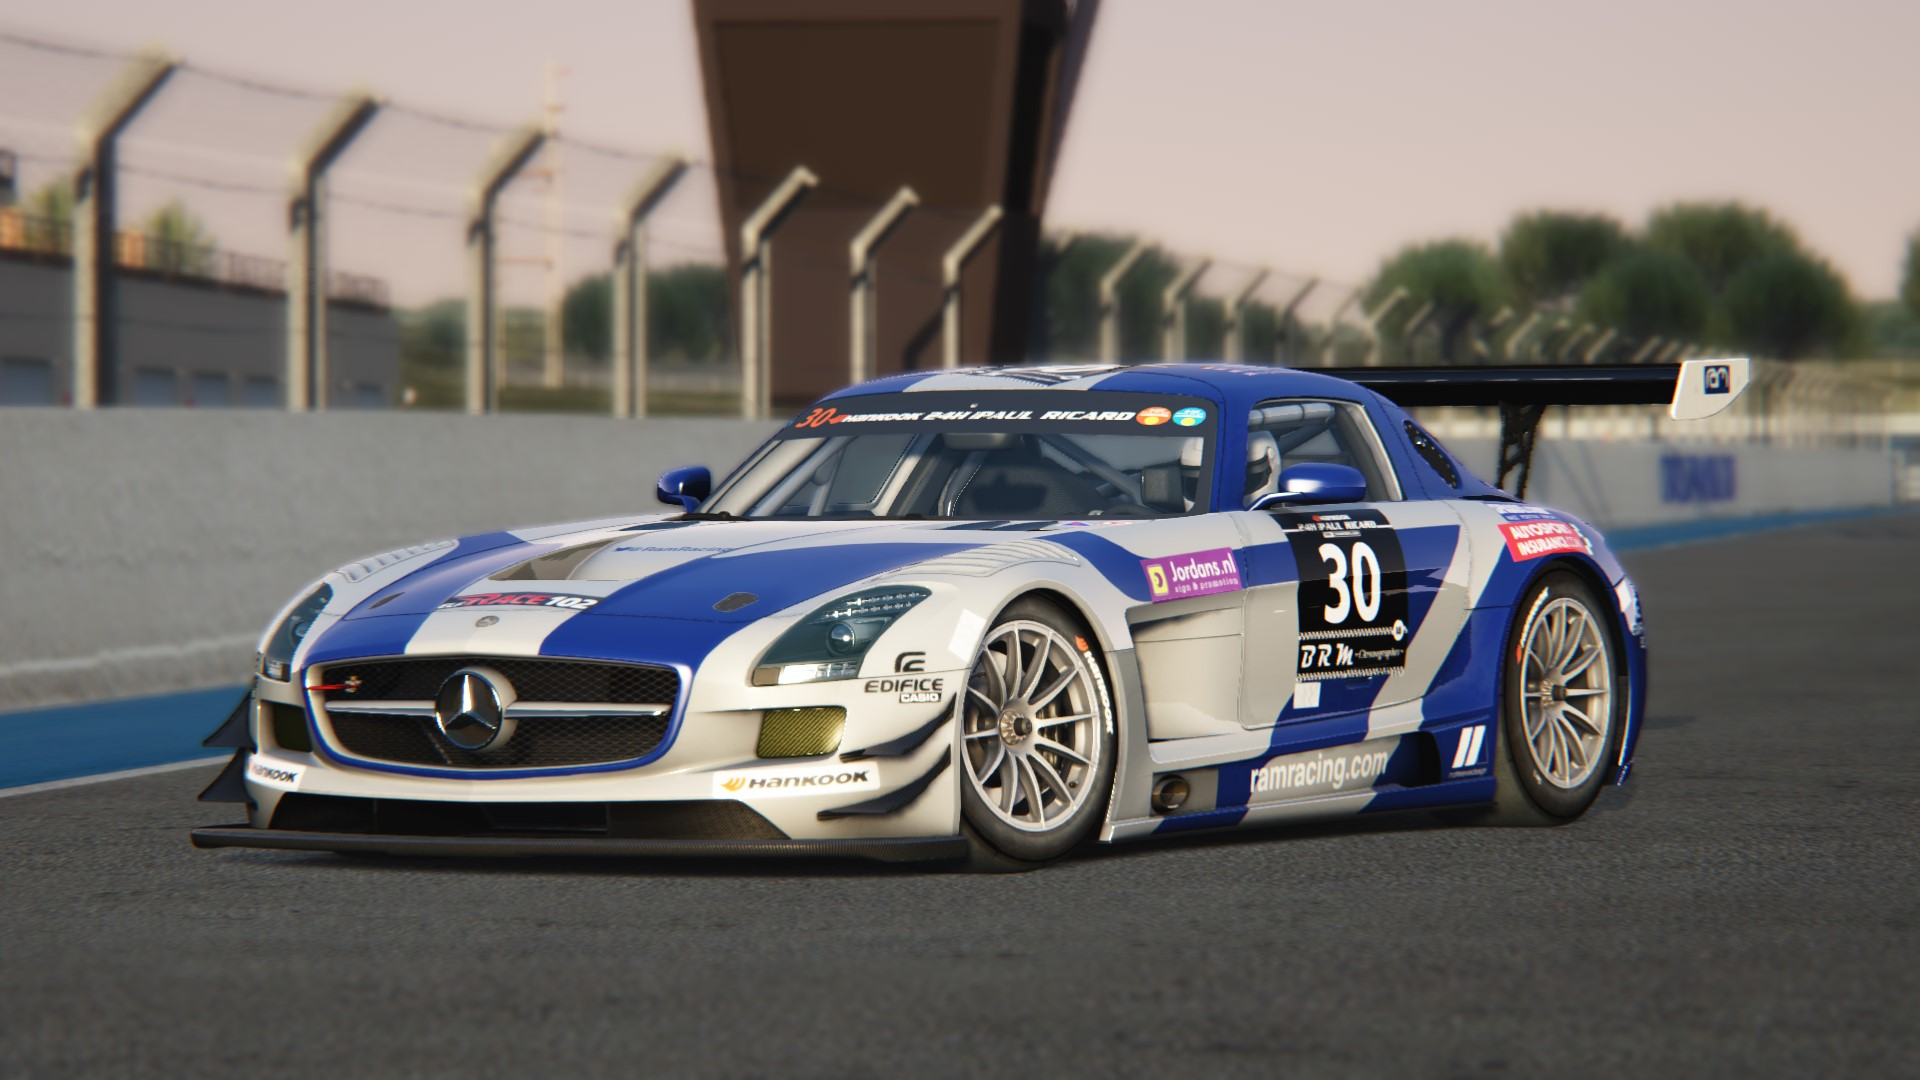 Screenshot_mercedes_sls_gt3_paul_ricard_12-7-115-15-14-53.jpg